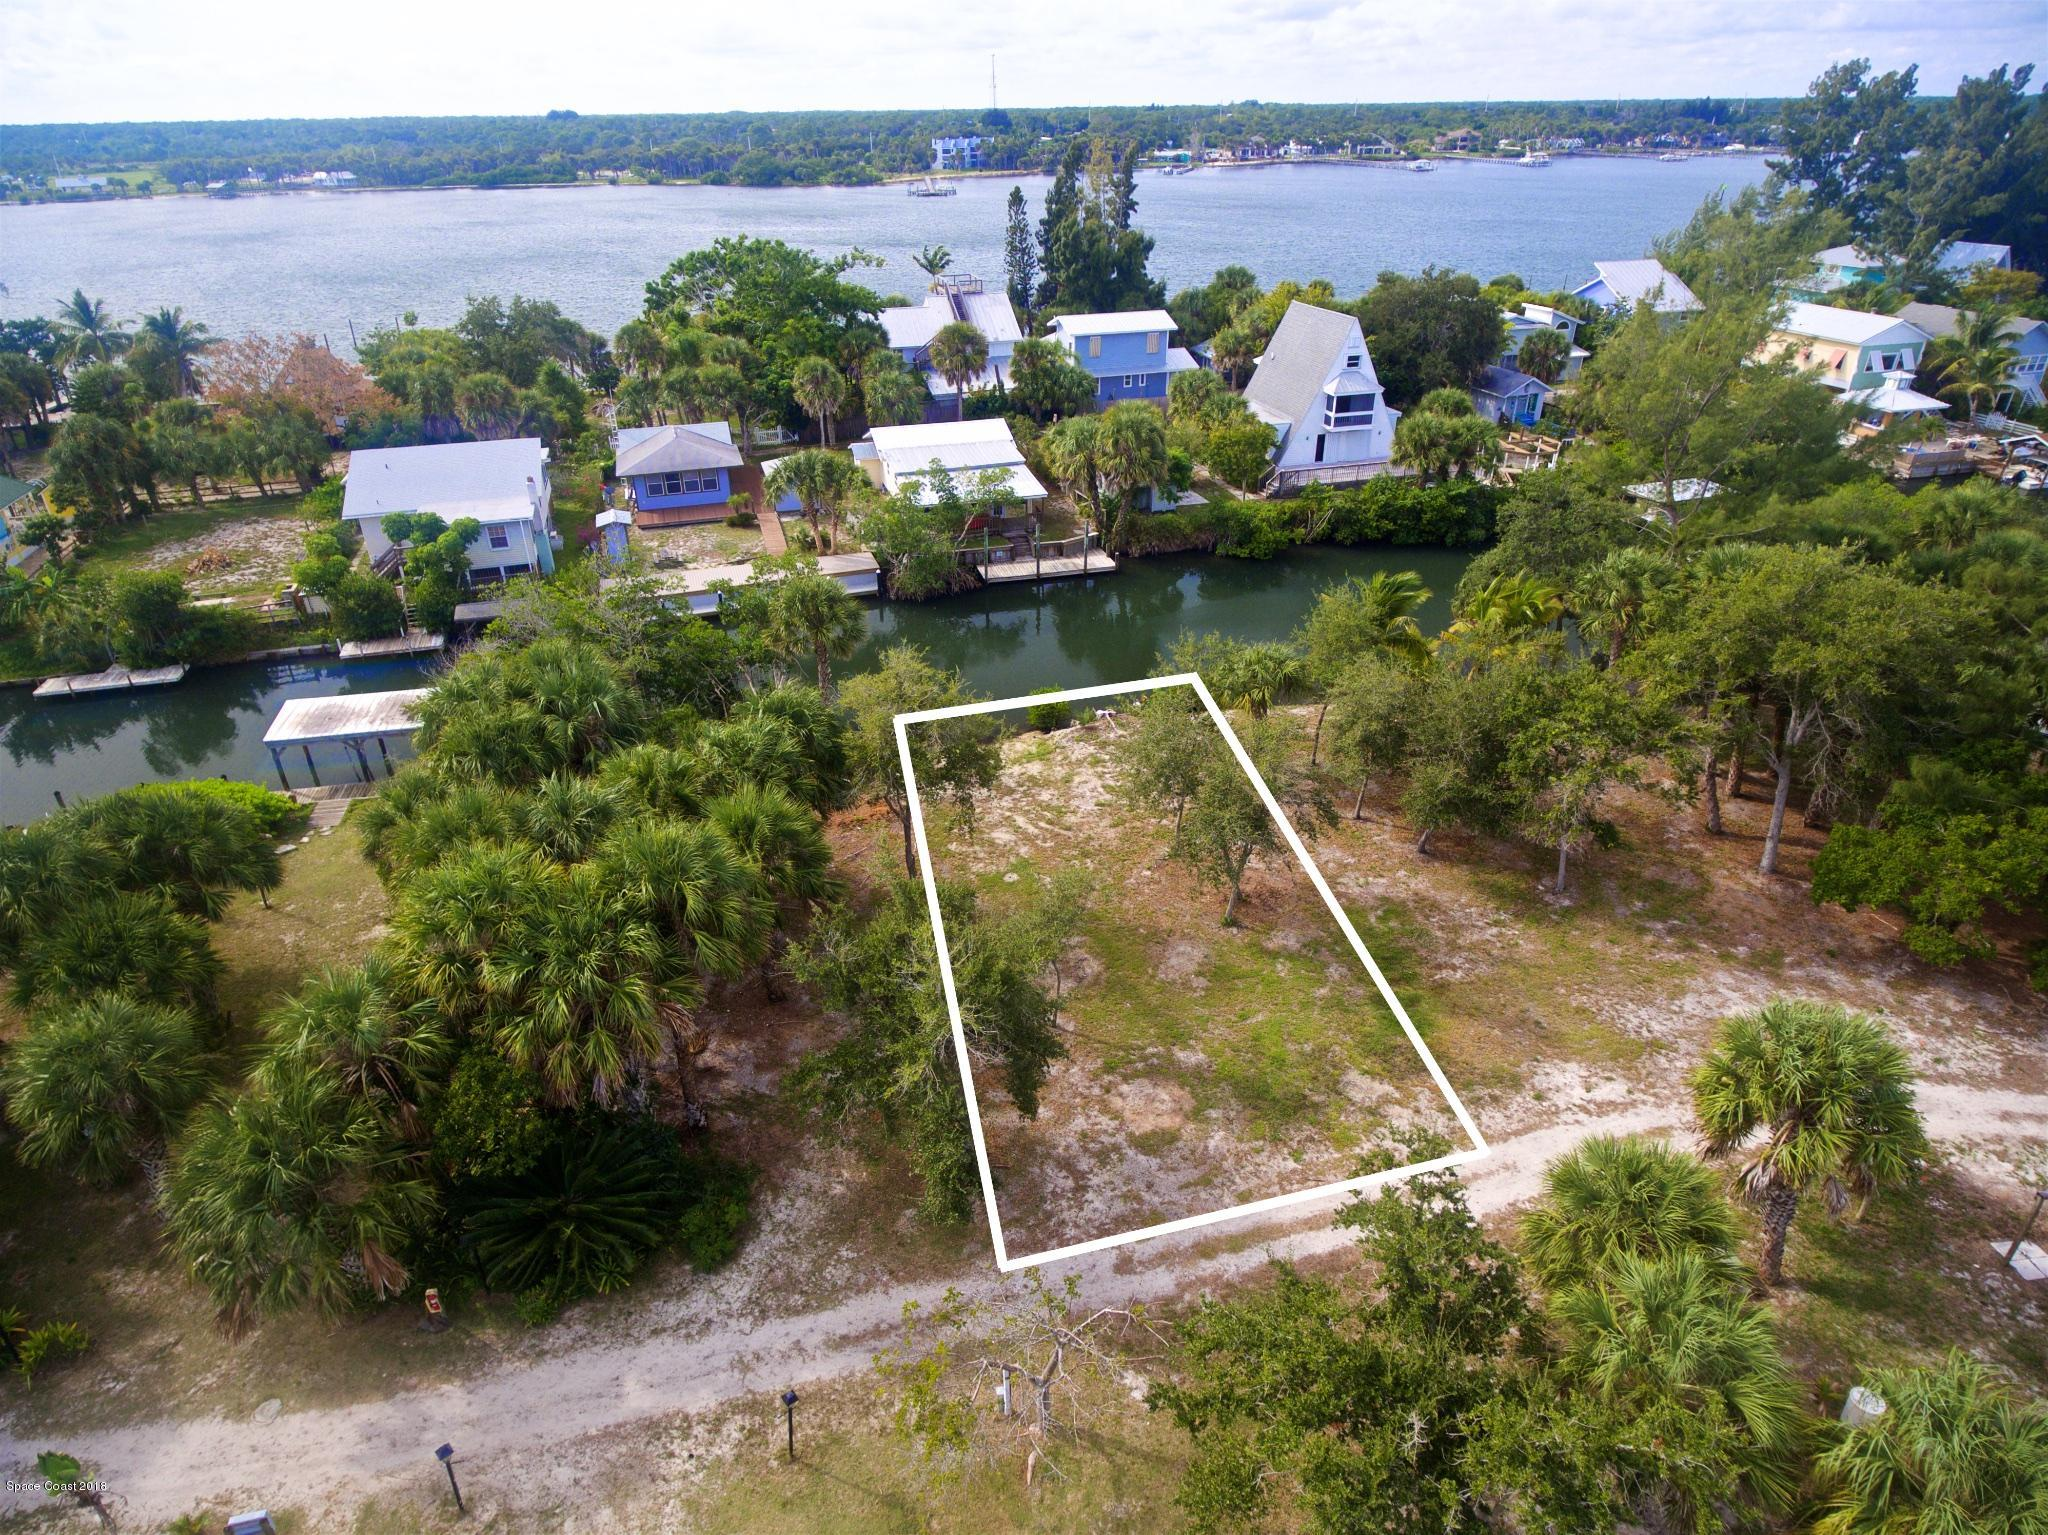 Land for Sale at 37 Vip 37 Vip Grant, Florida 32949 United States